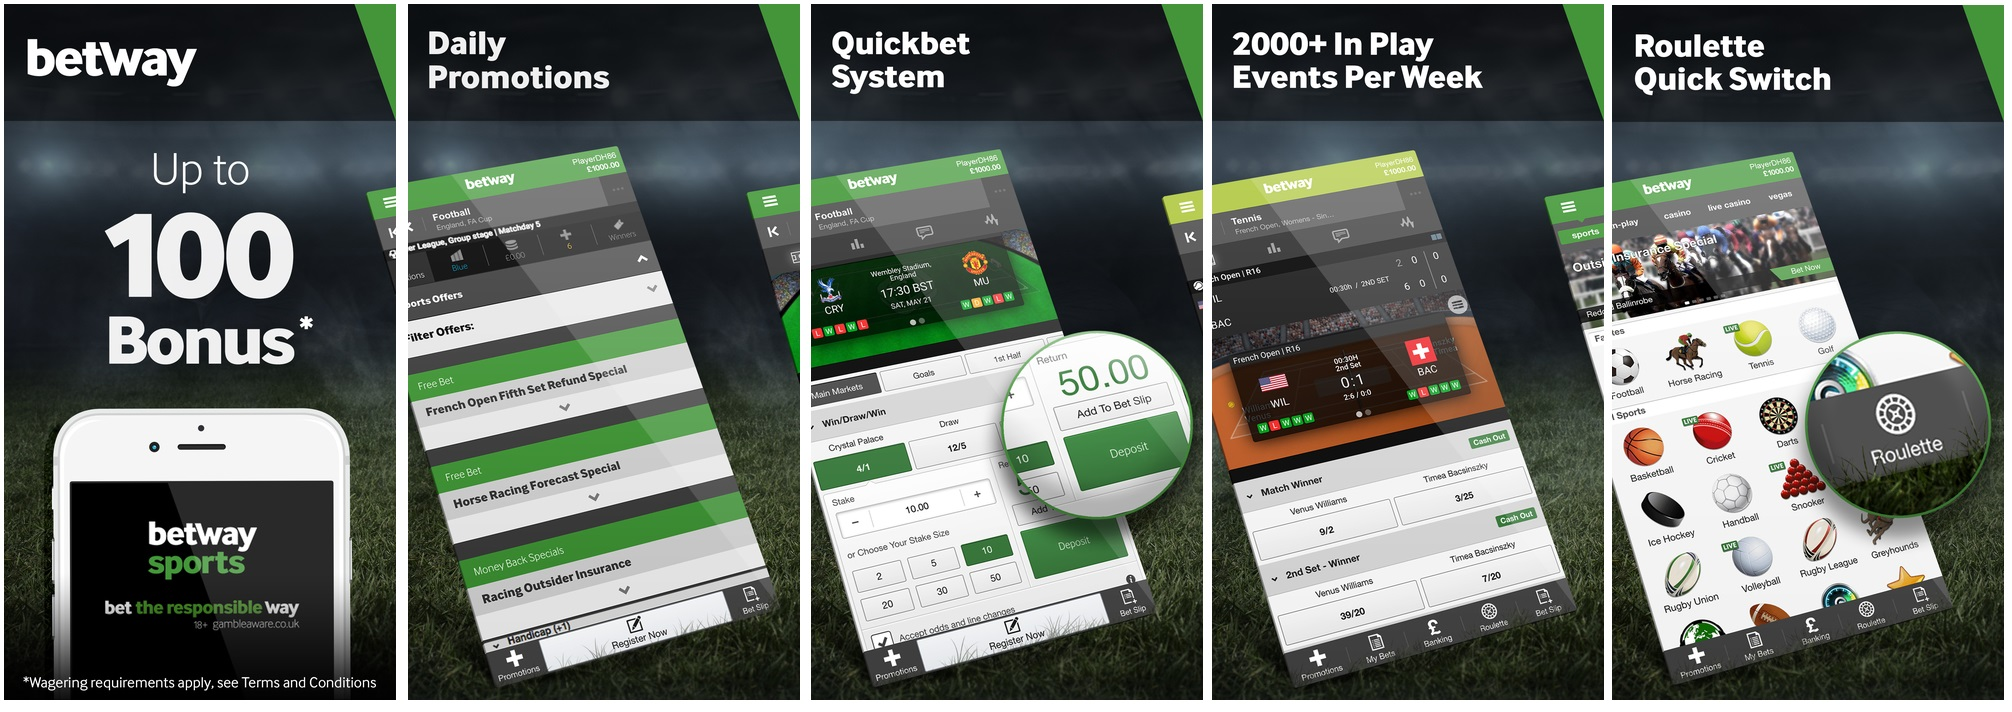 Betway app - betting on Betway Mobile